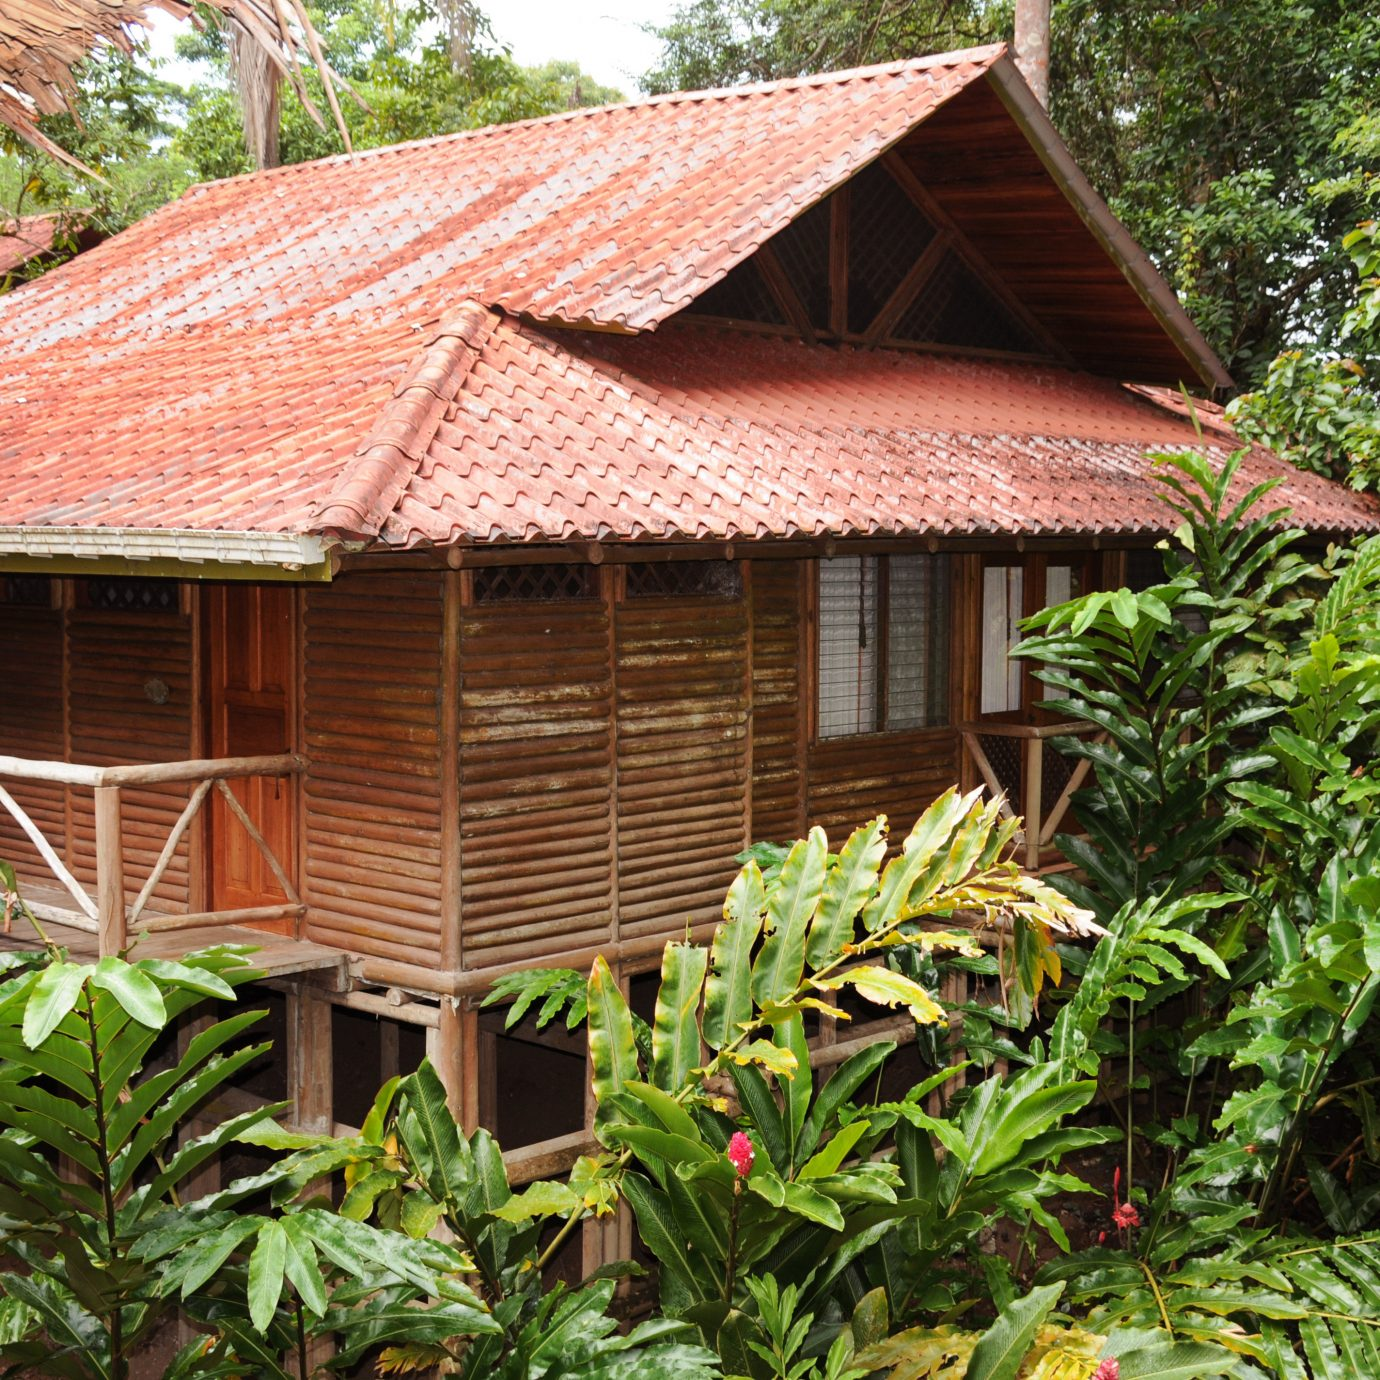 Adventure Forest Jungle Lodge Outdoors Rustic tree building house hut plant Garden rural area roof flower cottage outdoor structure shed backyard rainforest yard